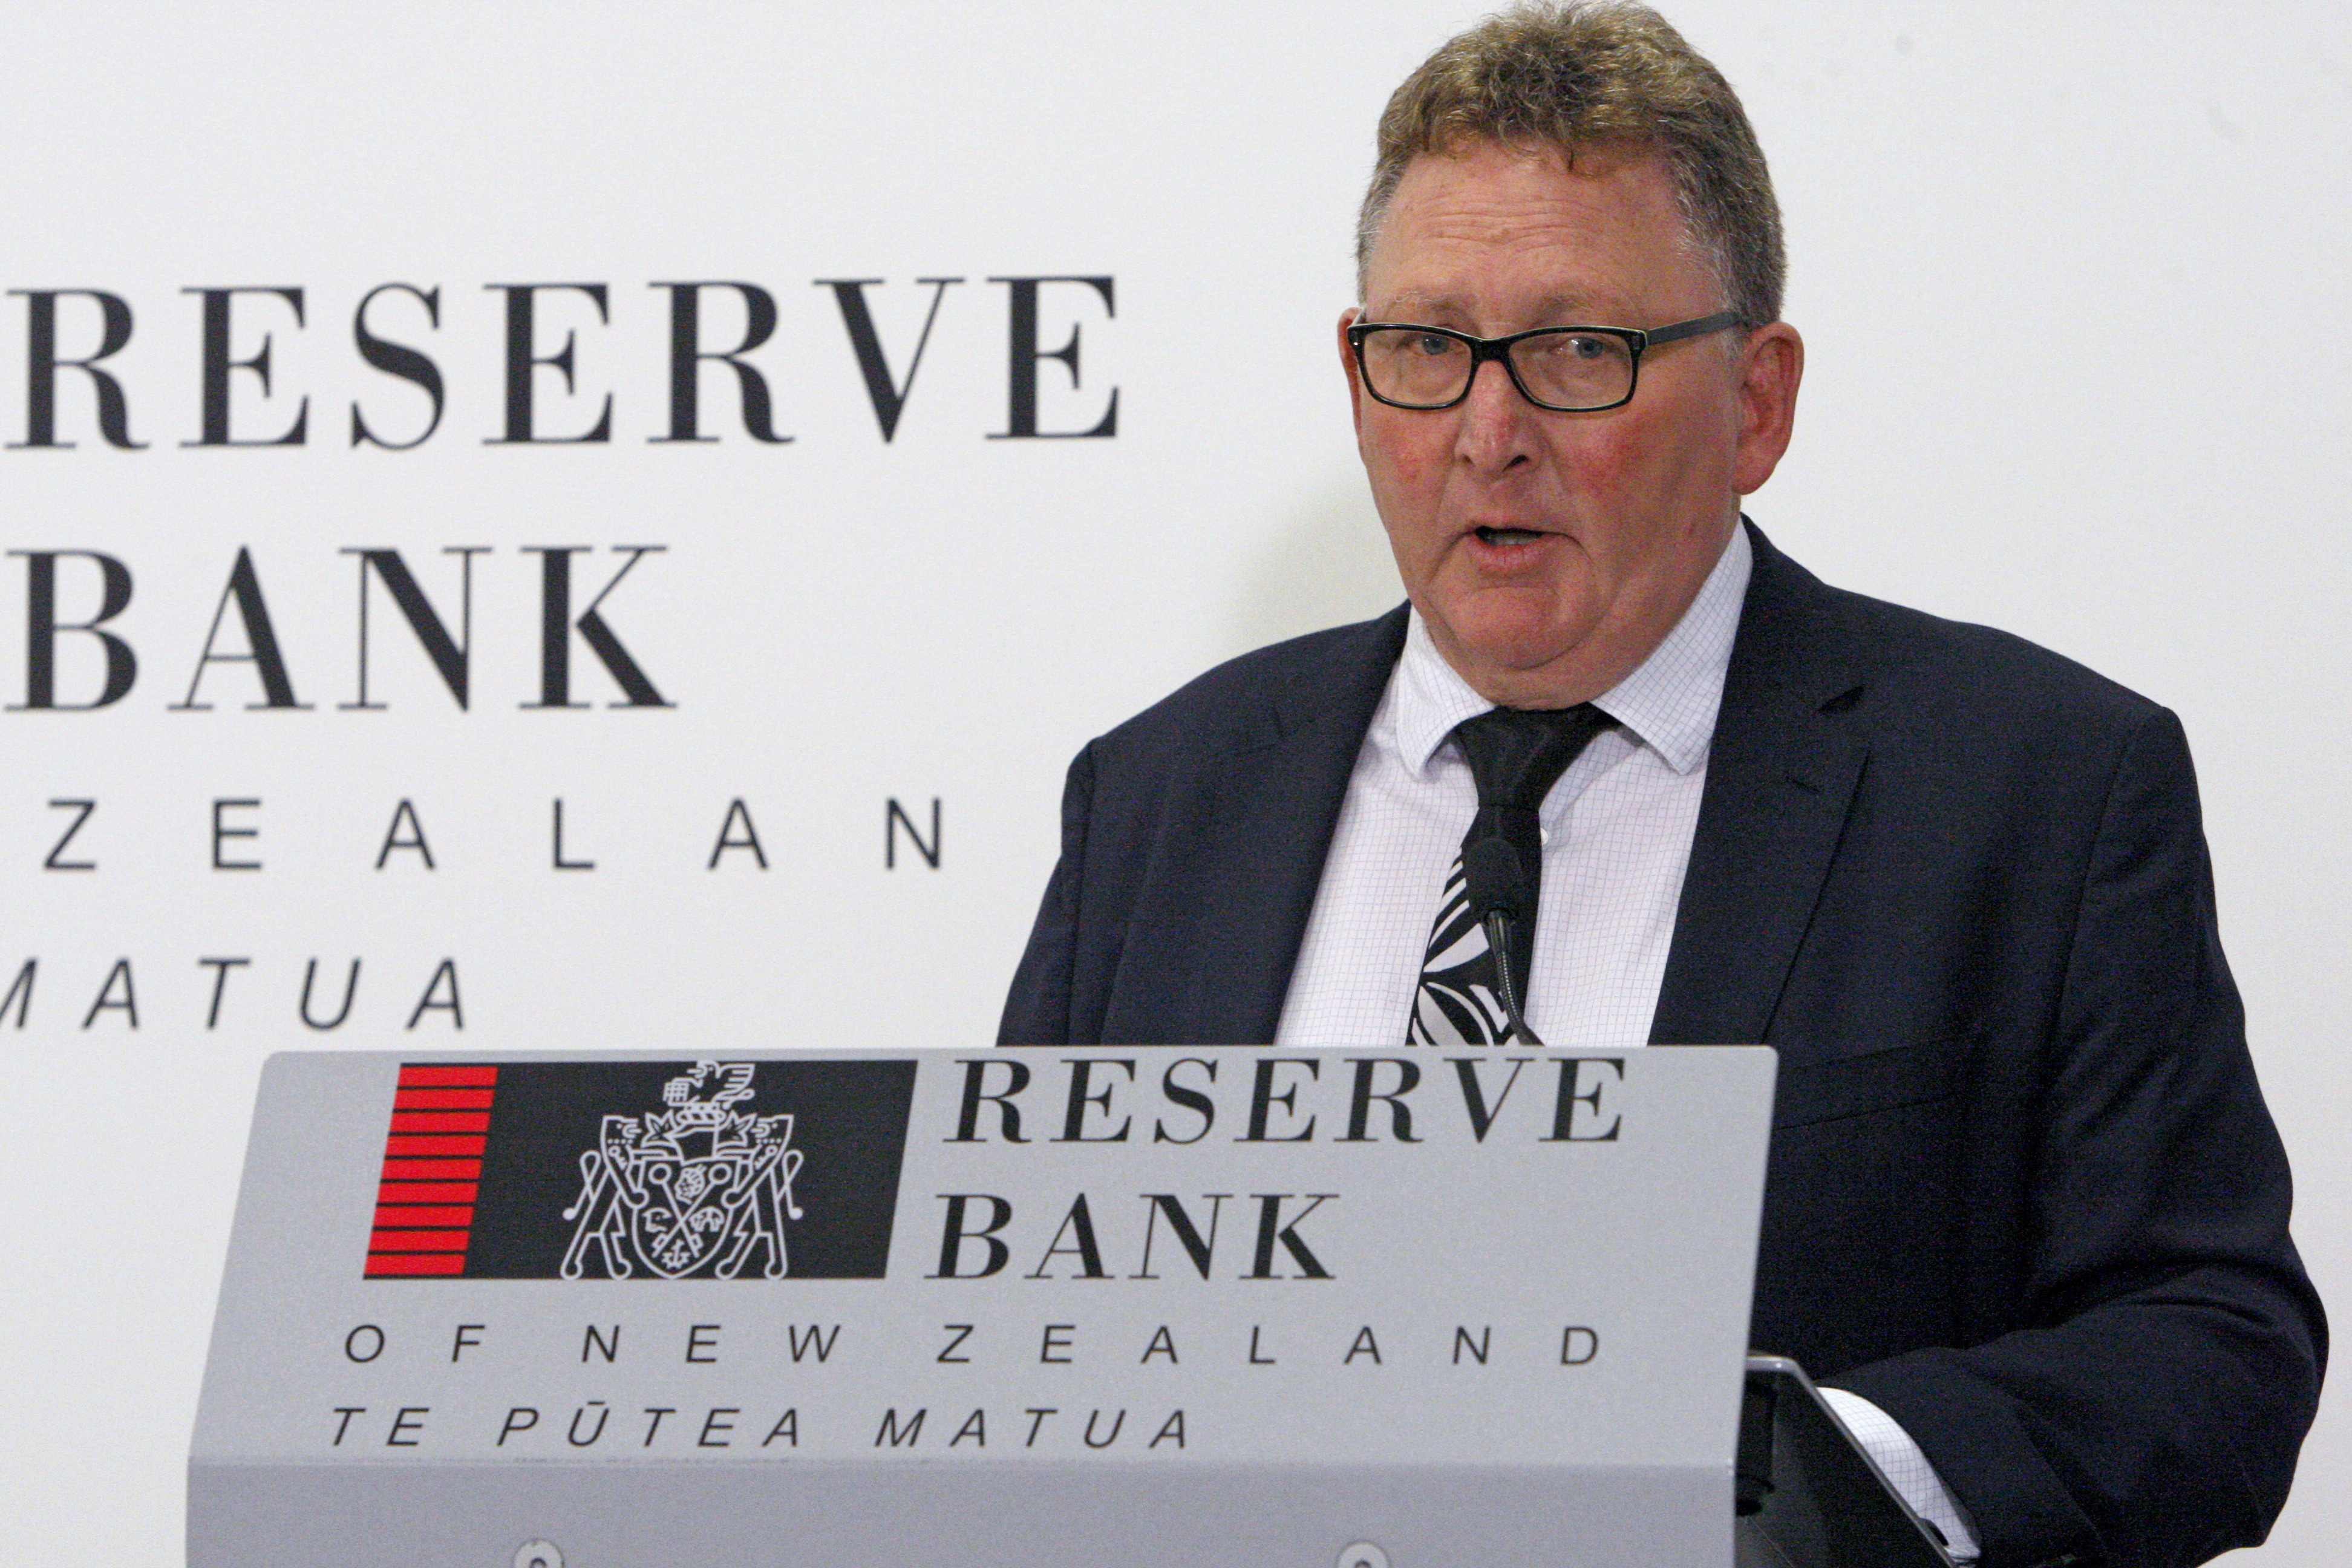 New Zealand's Reserve Bank Governor Adrian Orr speaks to the media in Wellington, New Zealand, on May 8, 2019.